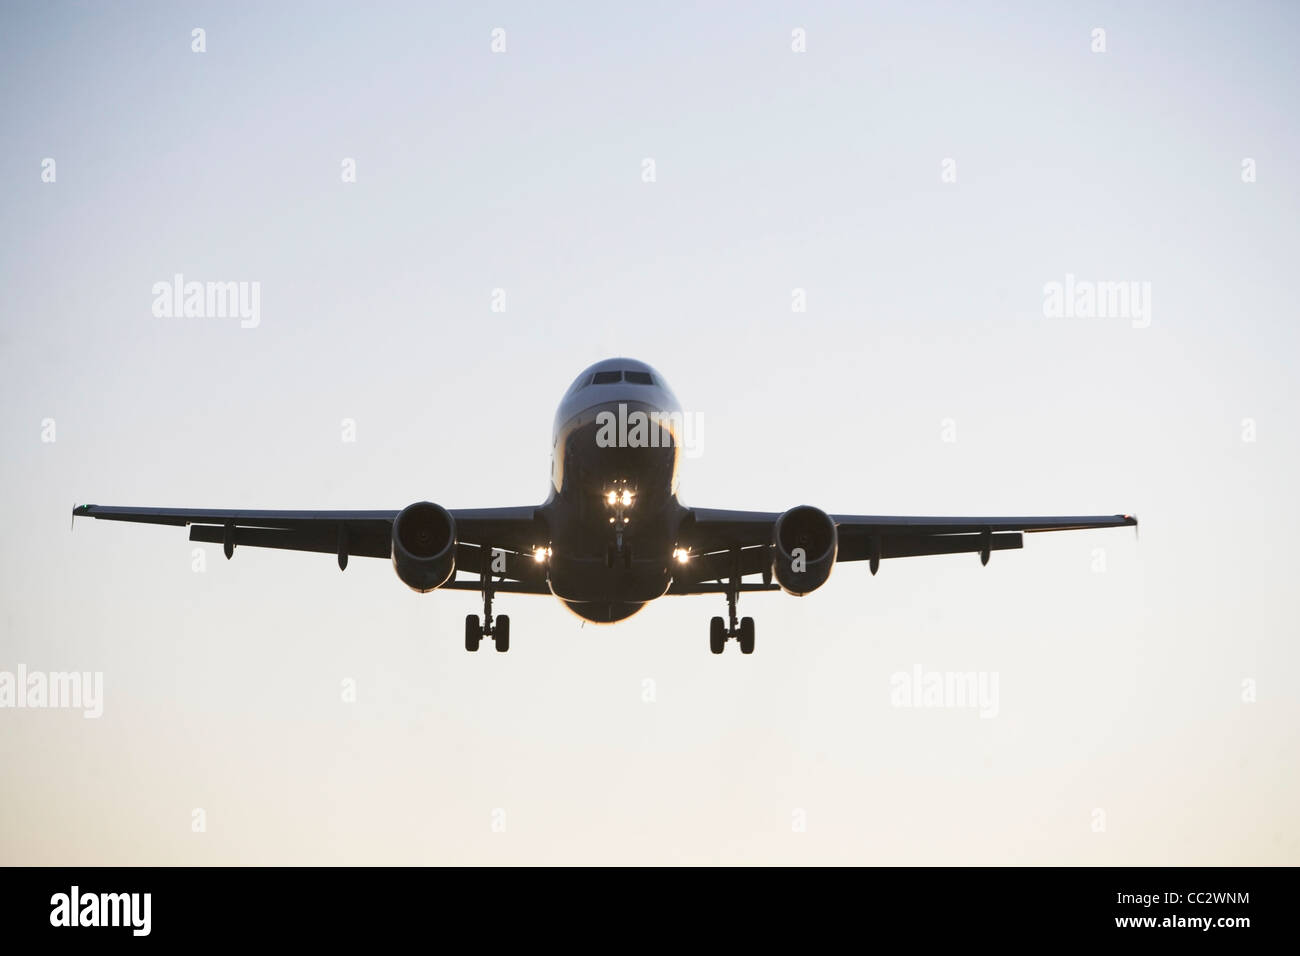 USA, New York City, Commercial aeroplane taking off from runway - Stock Image